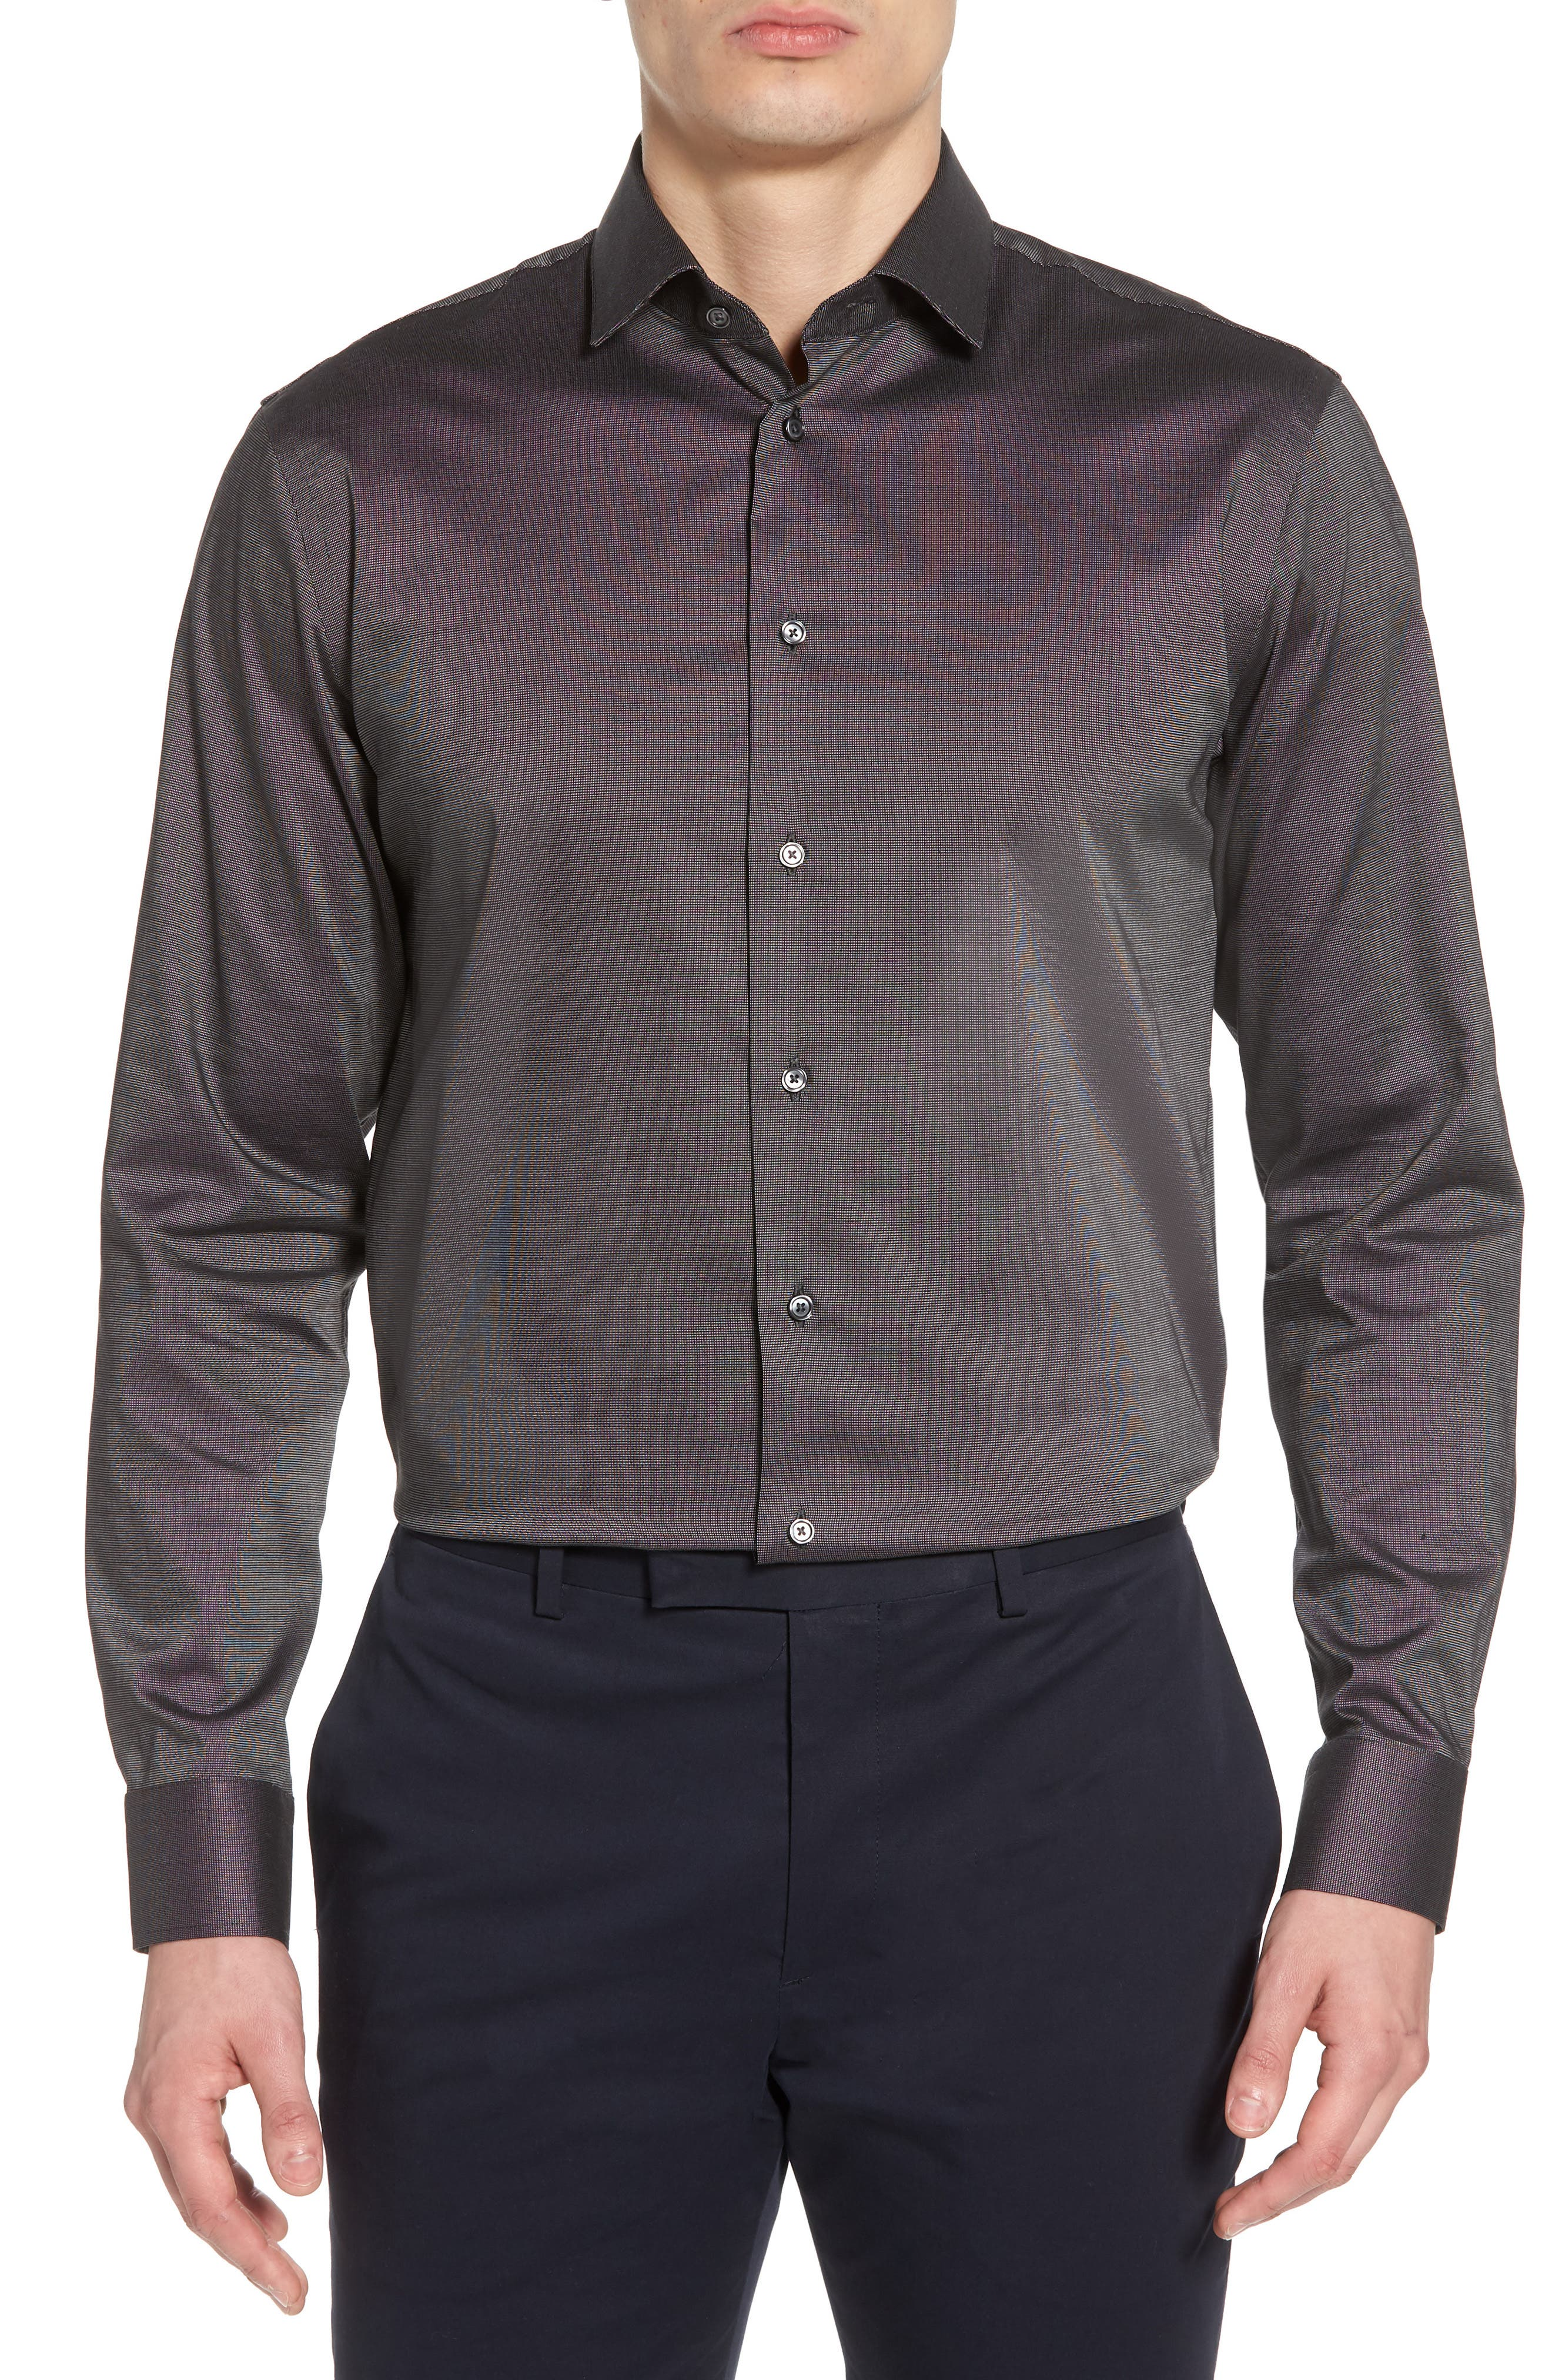 Calibrate Trim Fit Stretch Solid Dress Shirt